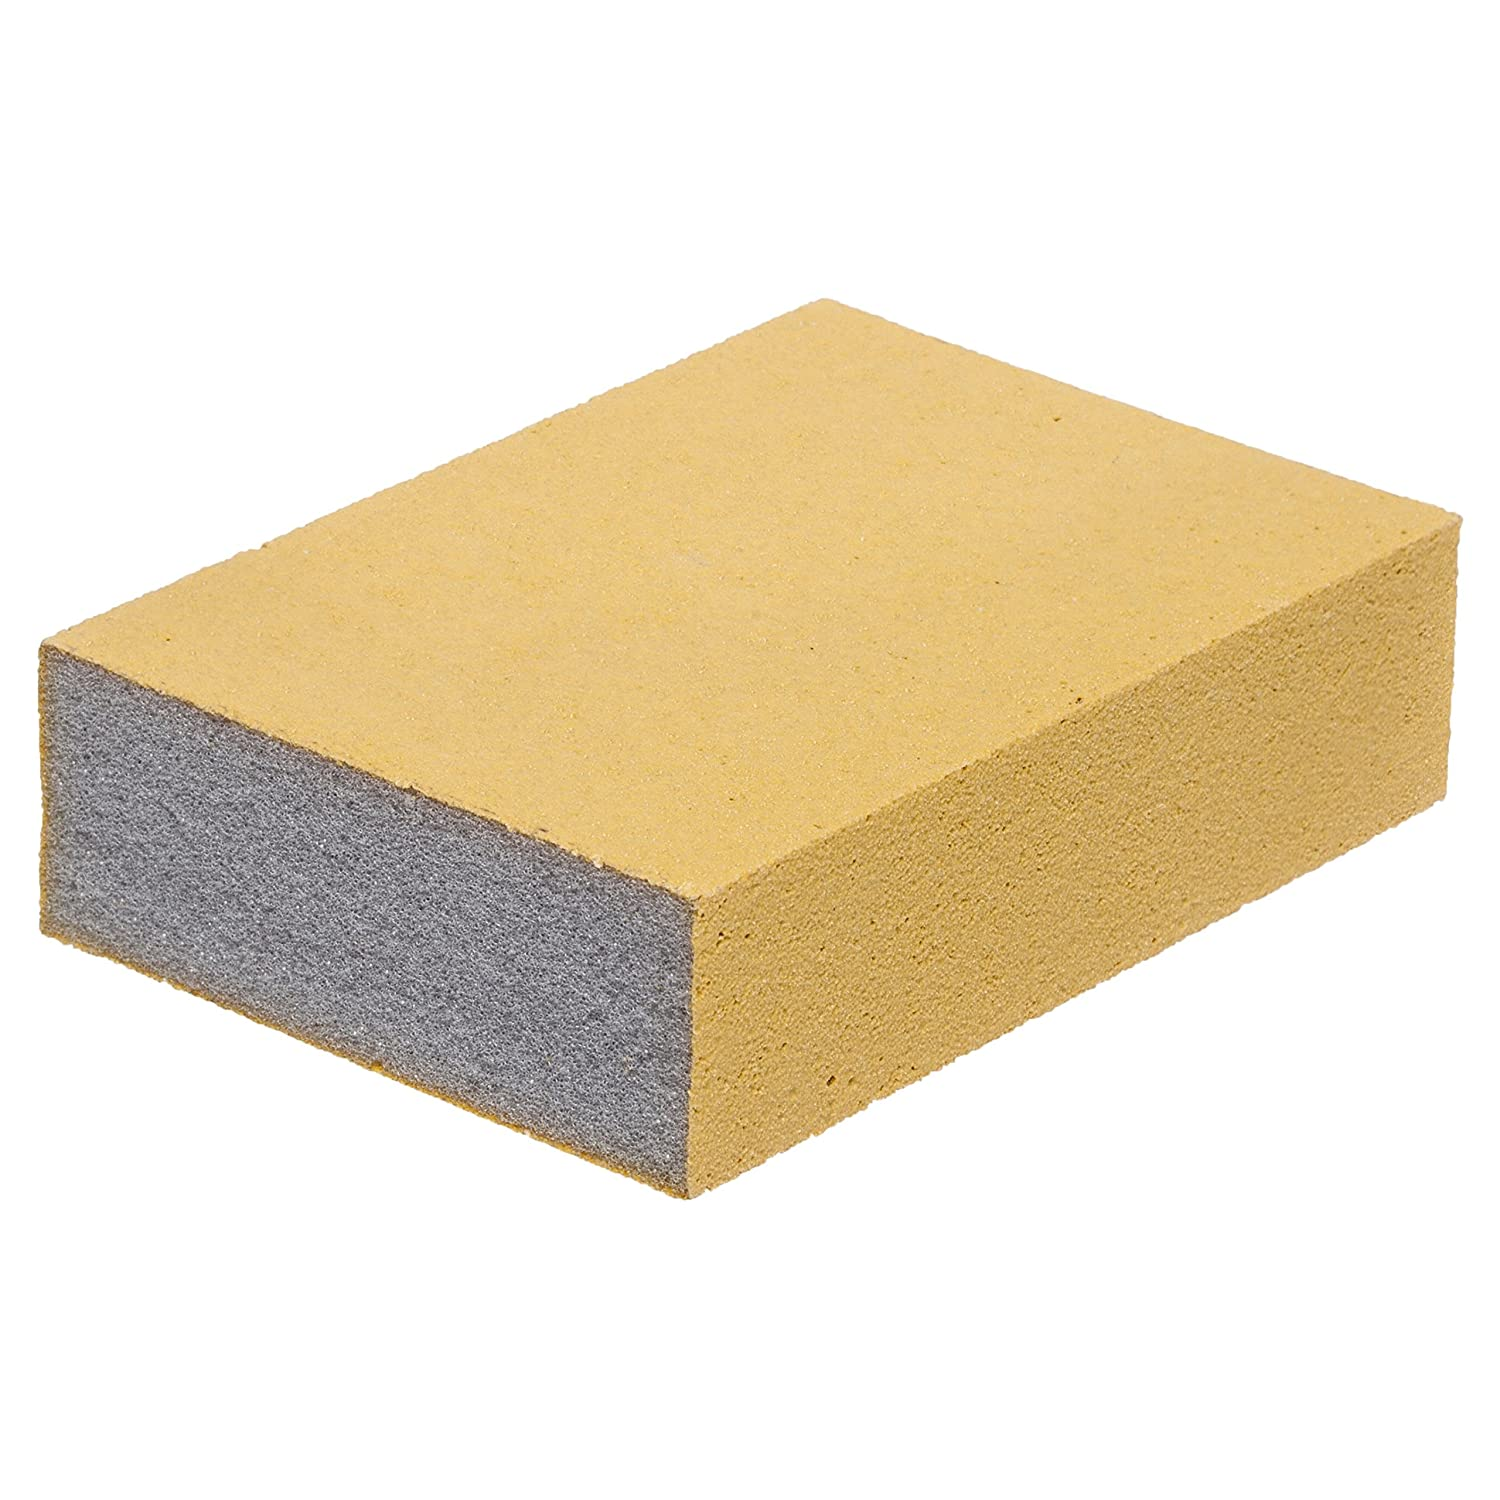 3M 20907-180 Sand Blaster Sanding Sponges 2.5 by 3.75 by 1-Inch